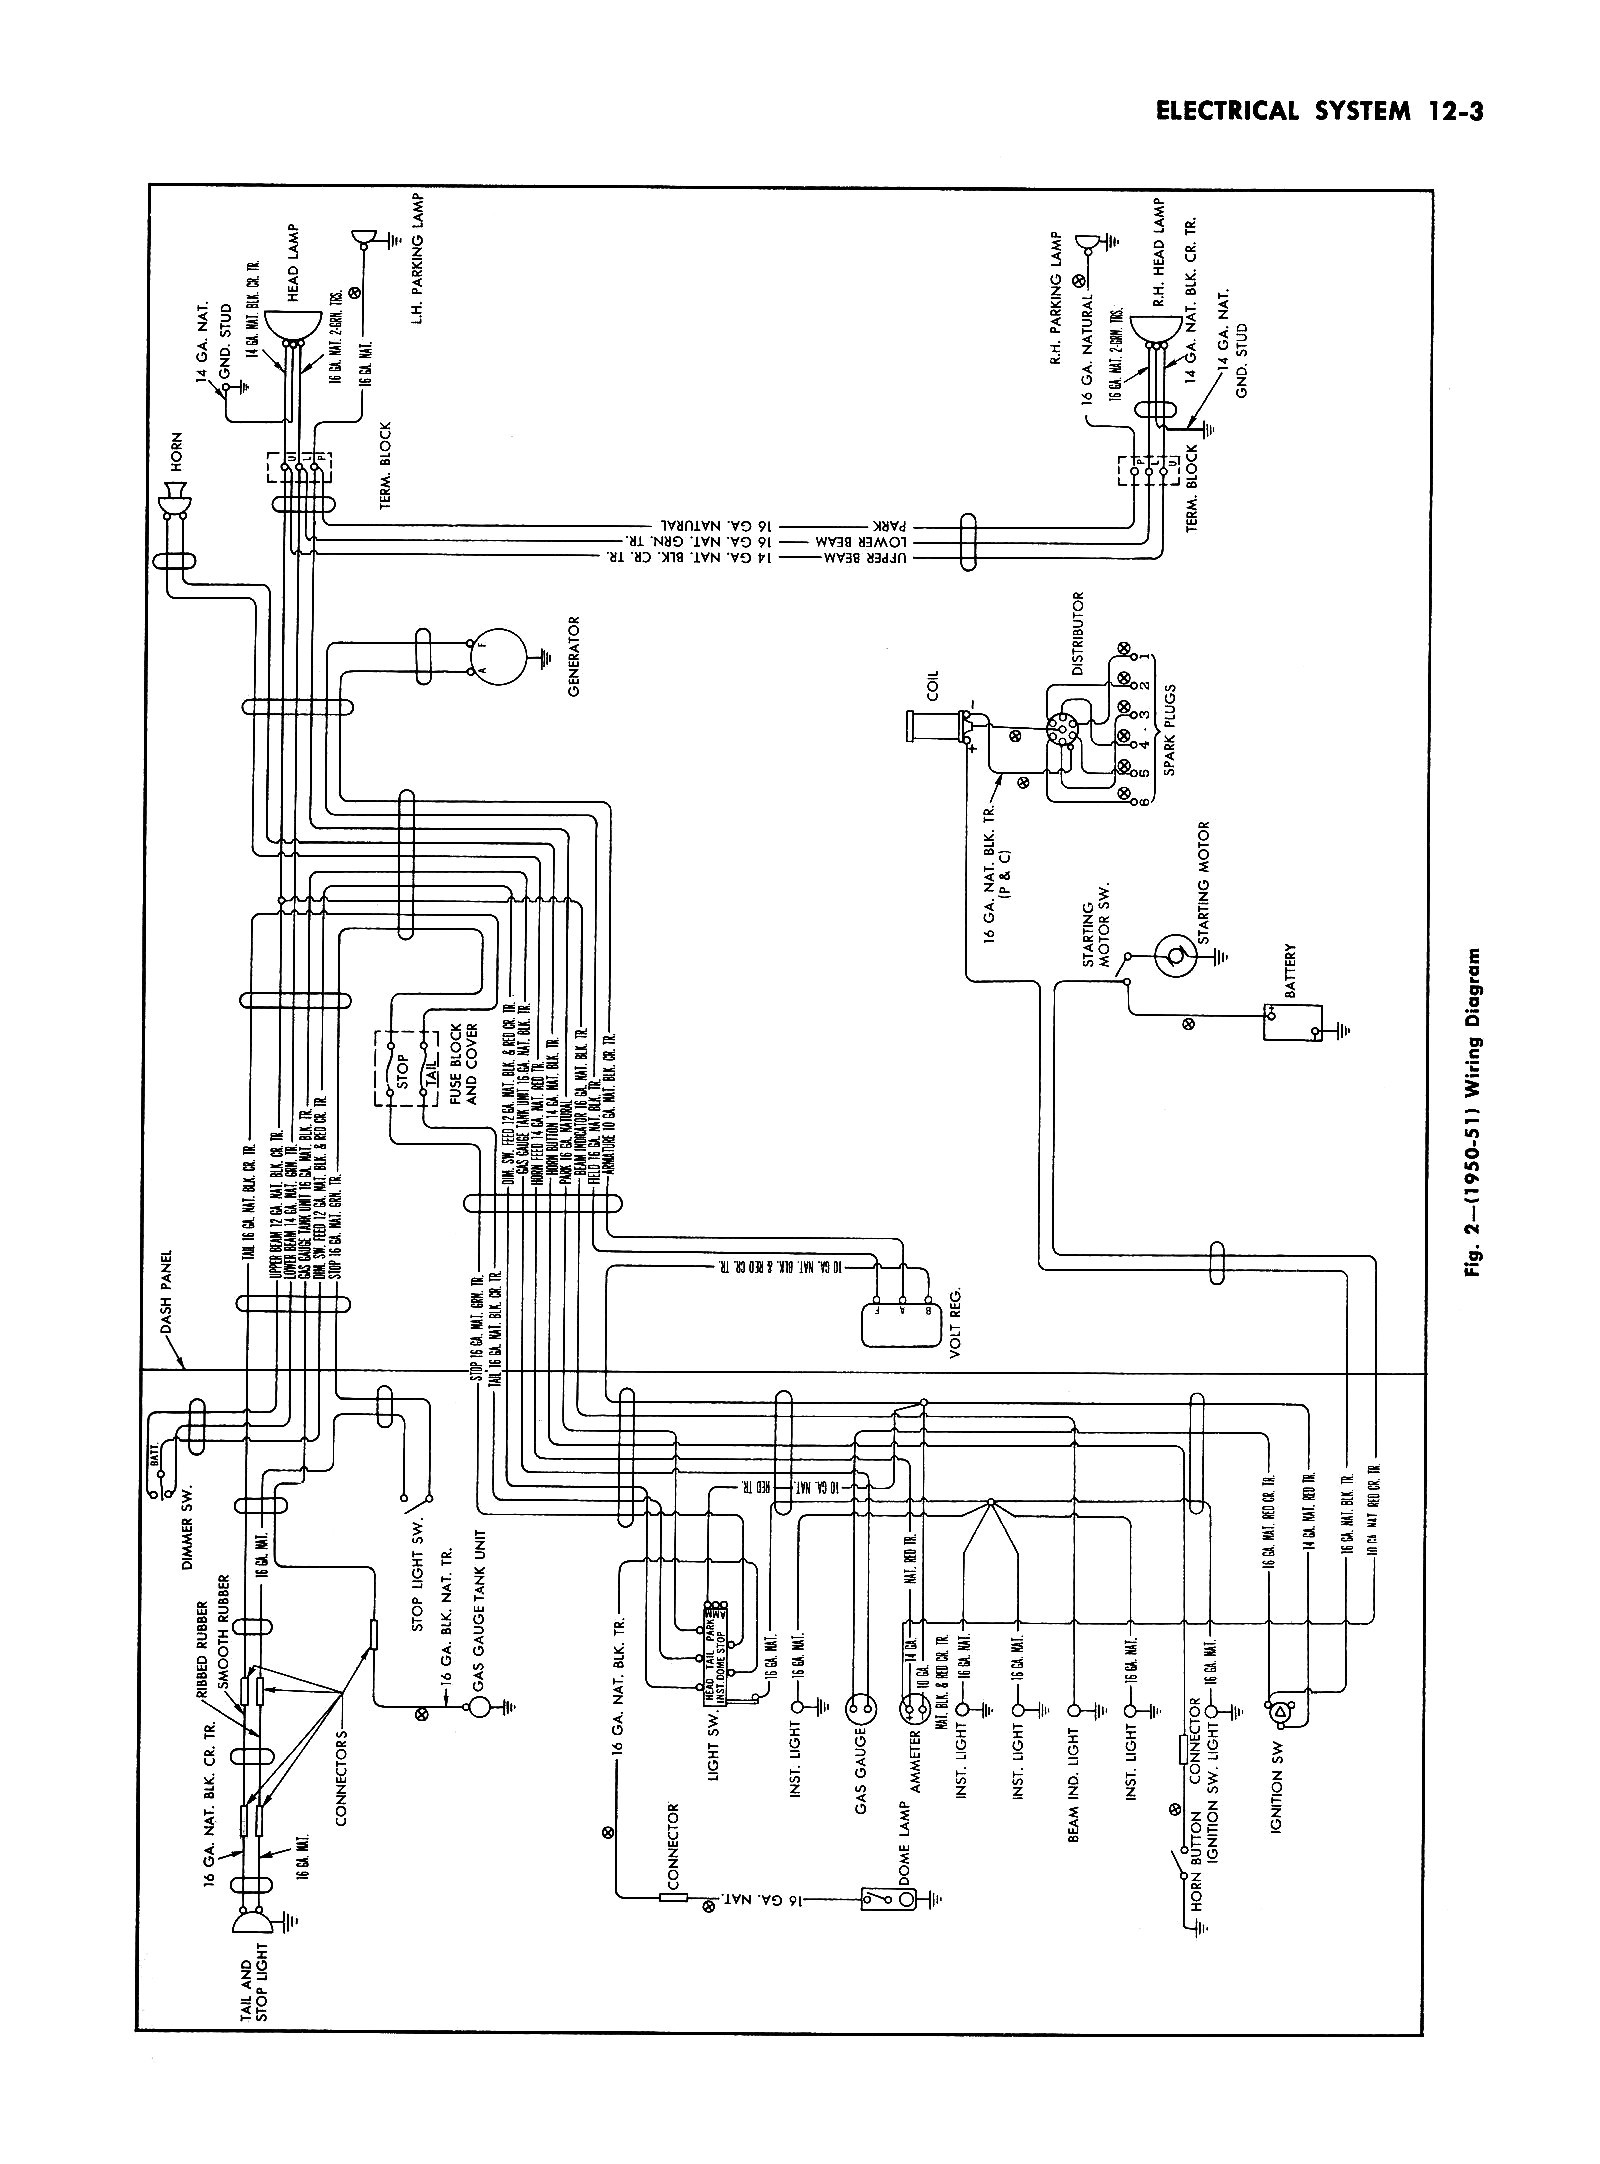 1951 chevy truck wiring diagram 1957 chevy heater wiring diagram 65 chevy truck wiring diagram 1951 chevy truck wiring diagram wiring diagram 1951 chevy truck wiring diagram ezgo controller of 1951